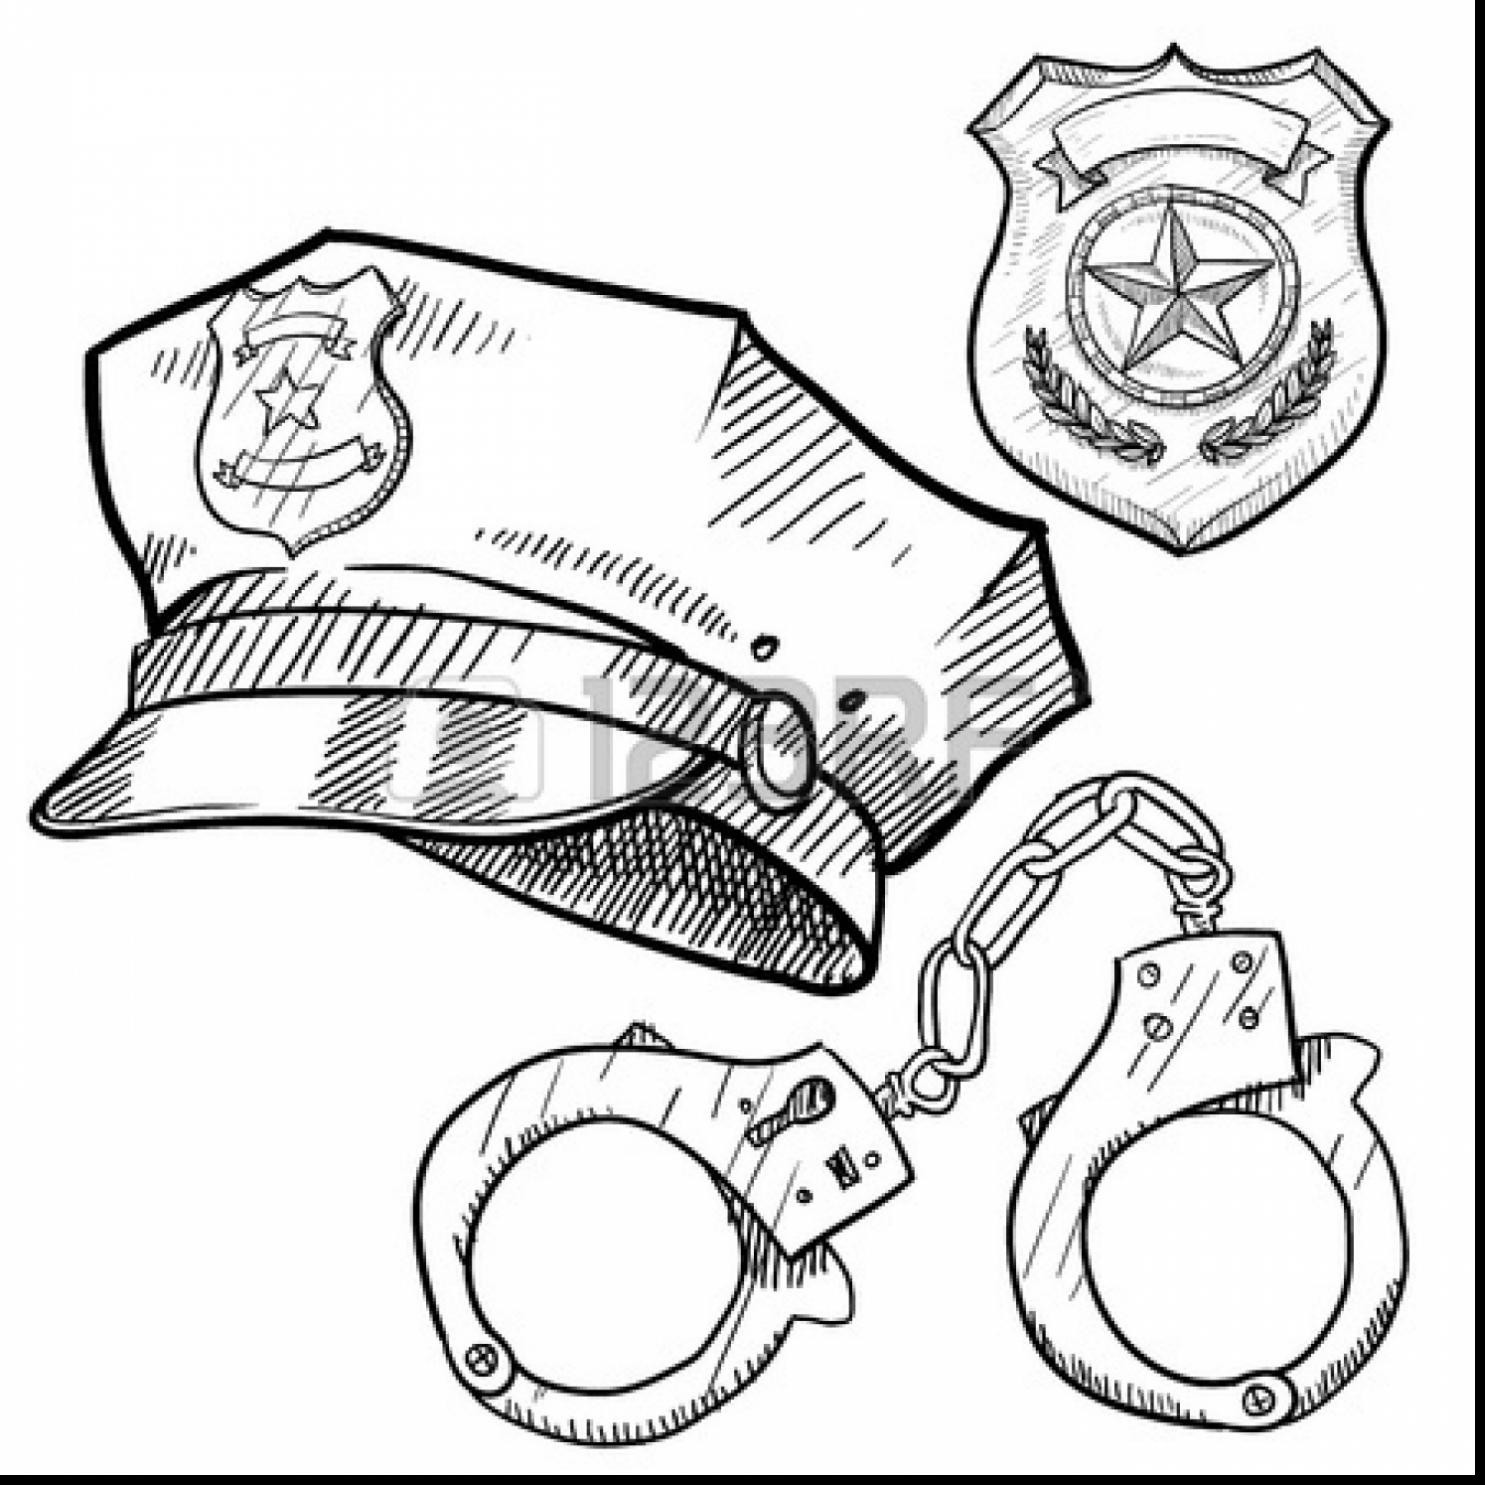 1485x1485 Best Policeman Coloring Page Coloring For Funny Lego Moto Police